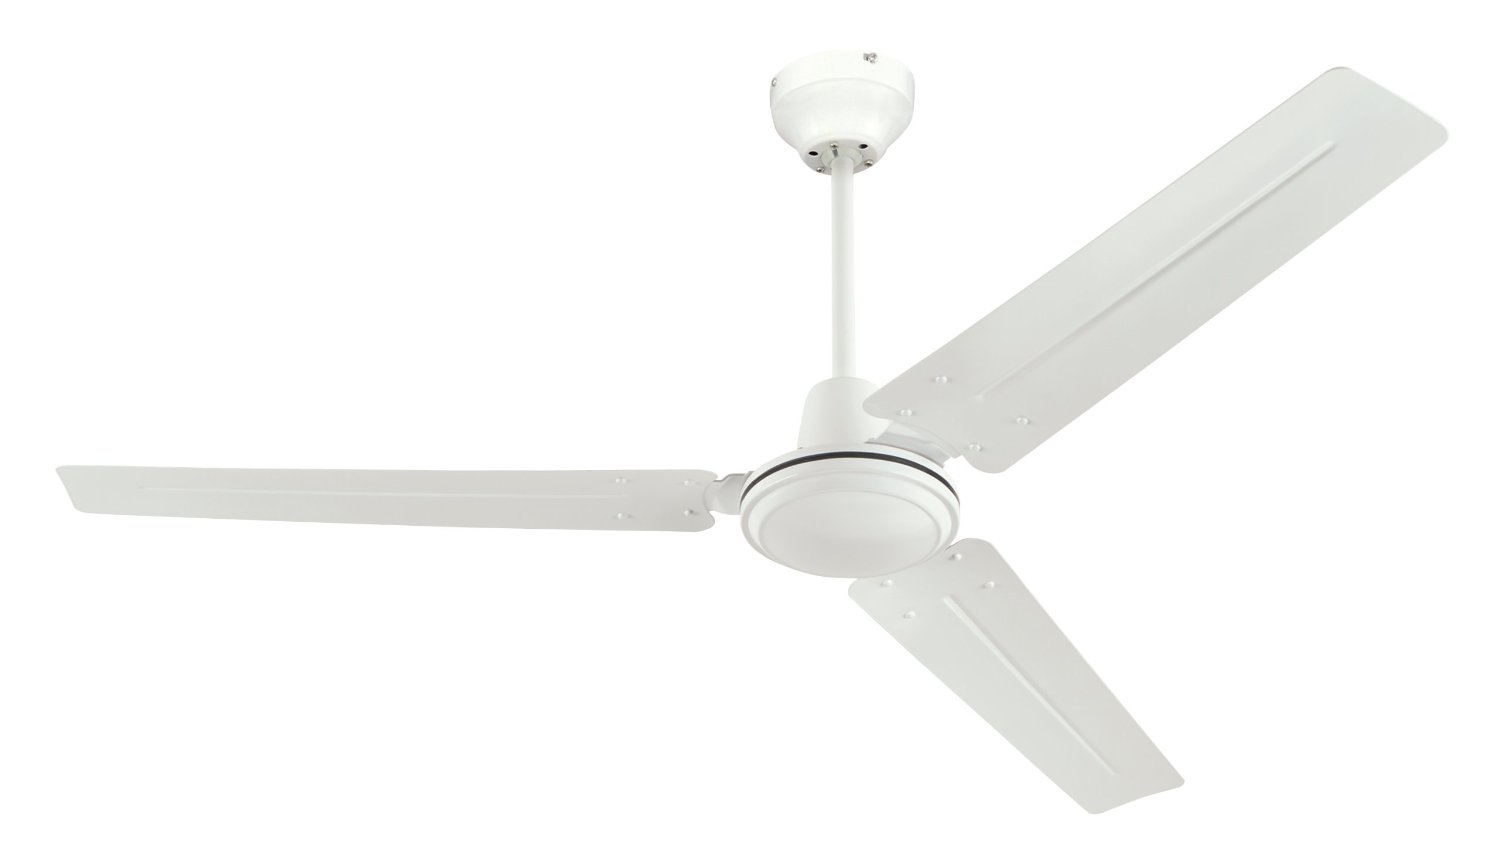 5 best commercial ceiling fans tool box - Sme information about best cieling fan ...